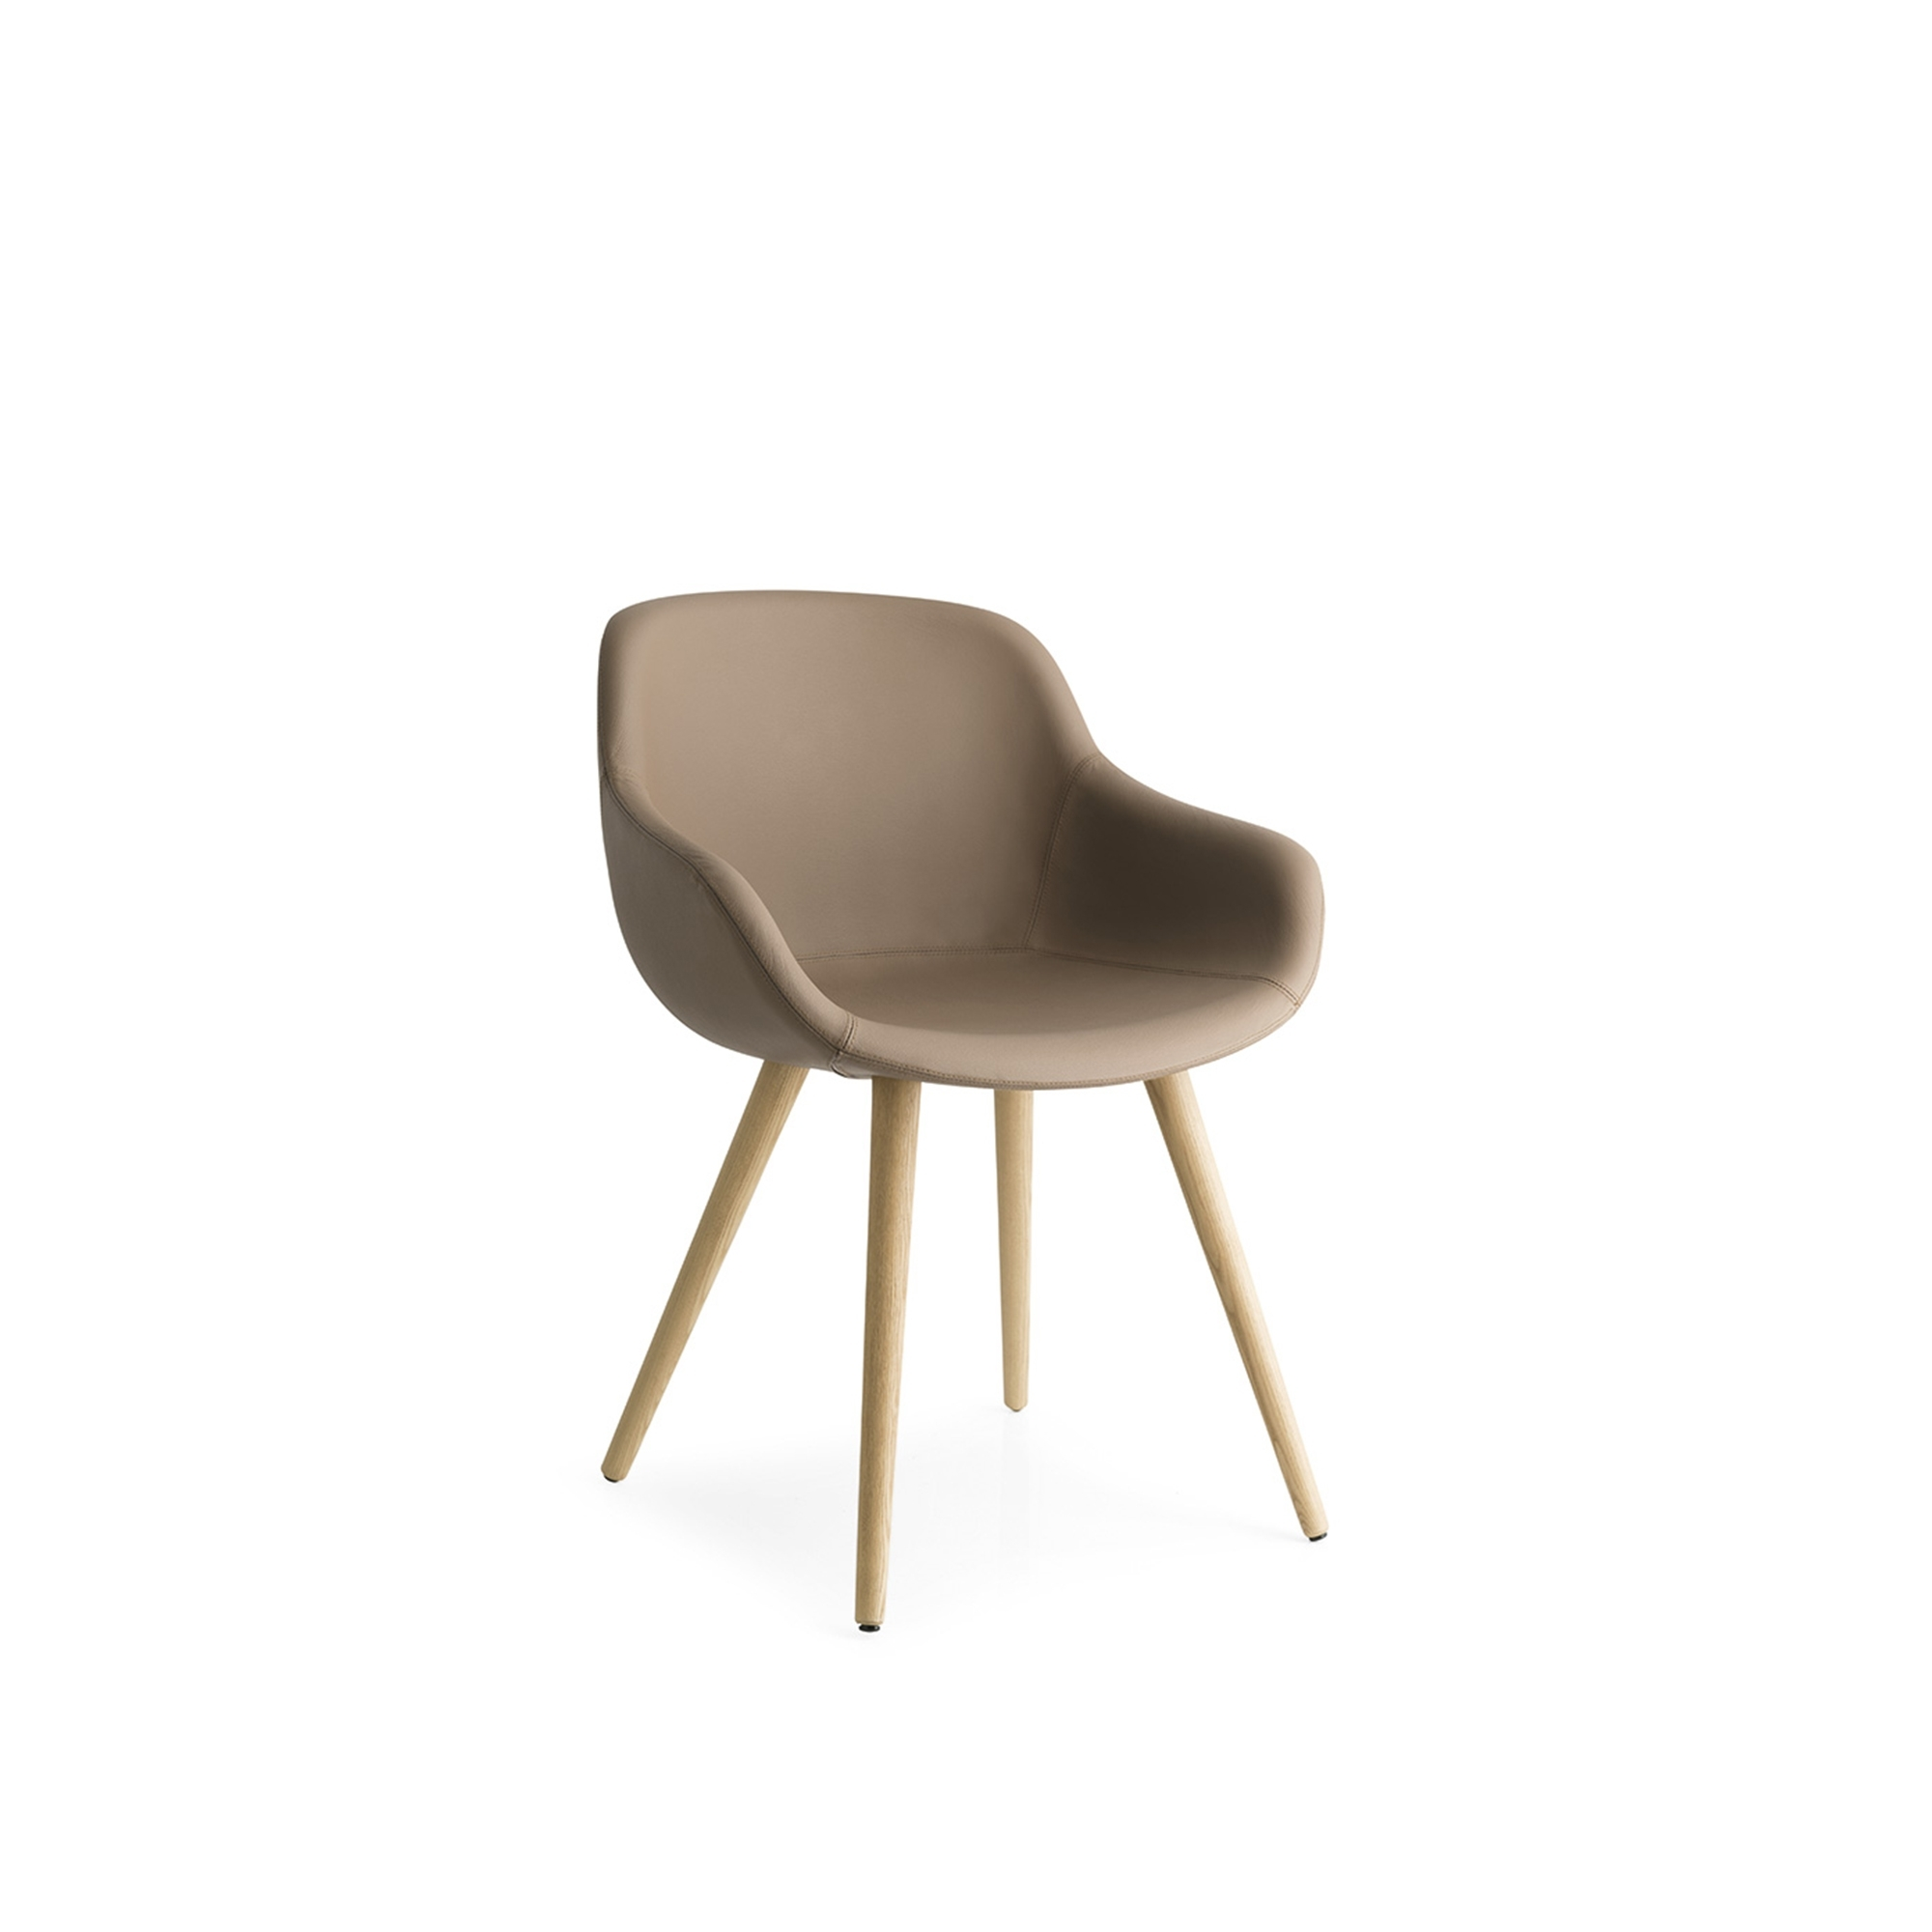 calligaris sofas uk tropical sectional igloo dining chair chairs cookes furniture loading zoom